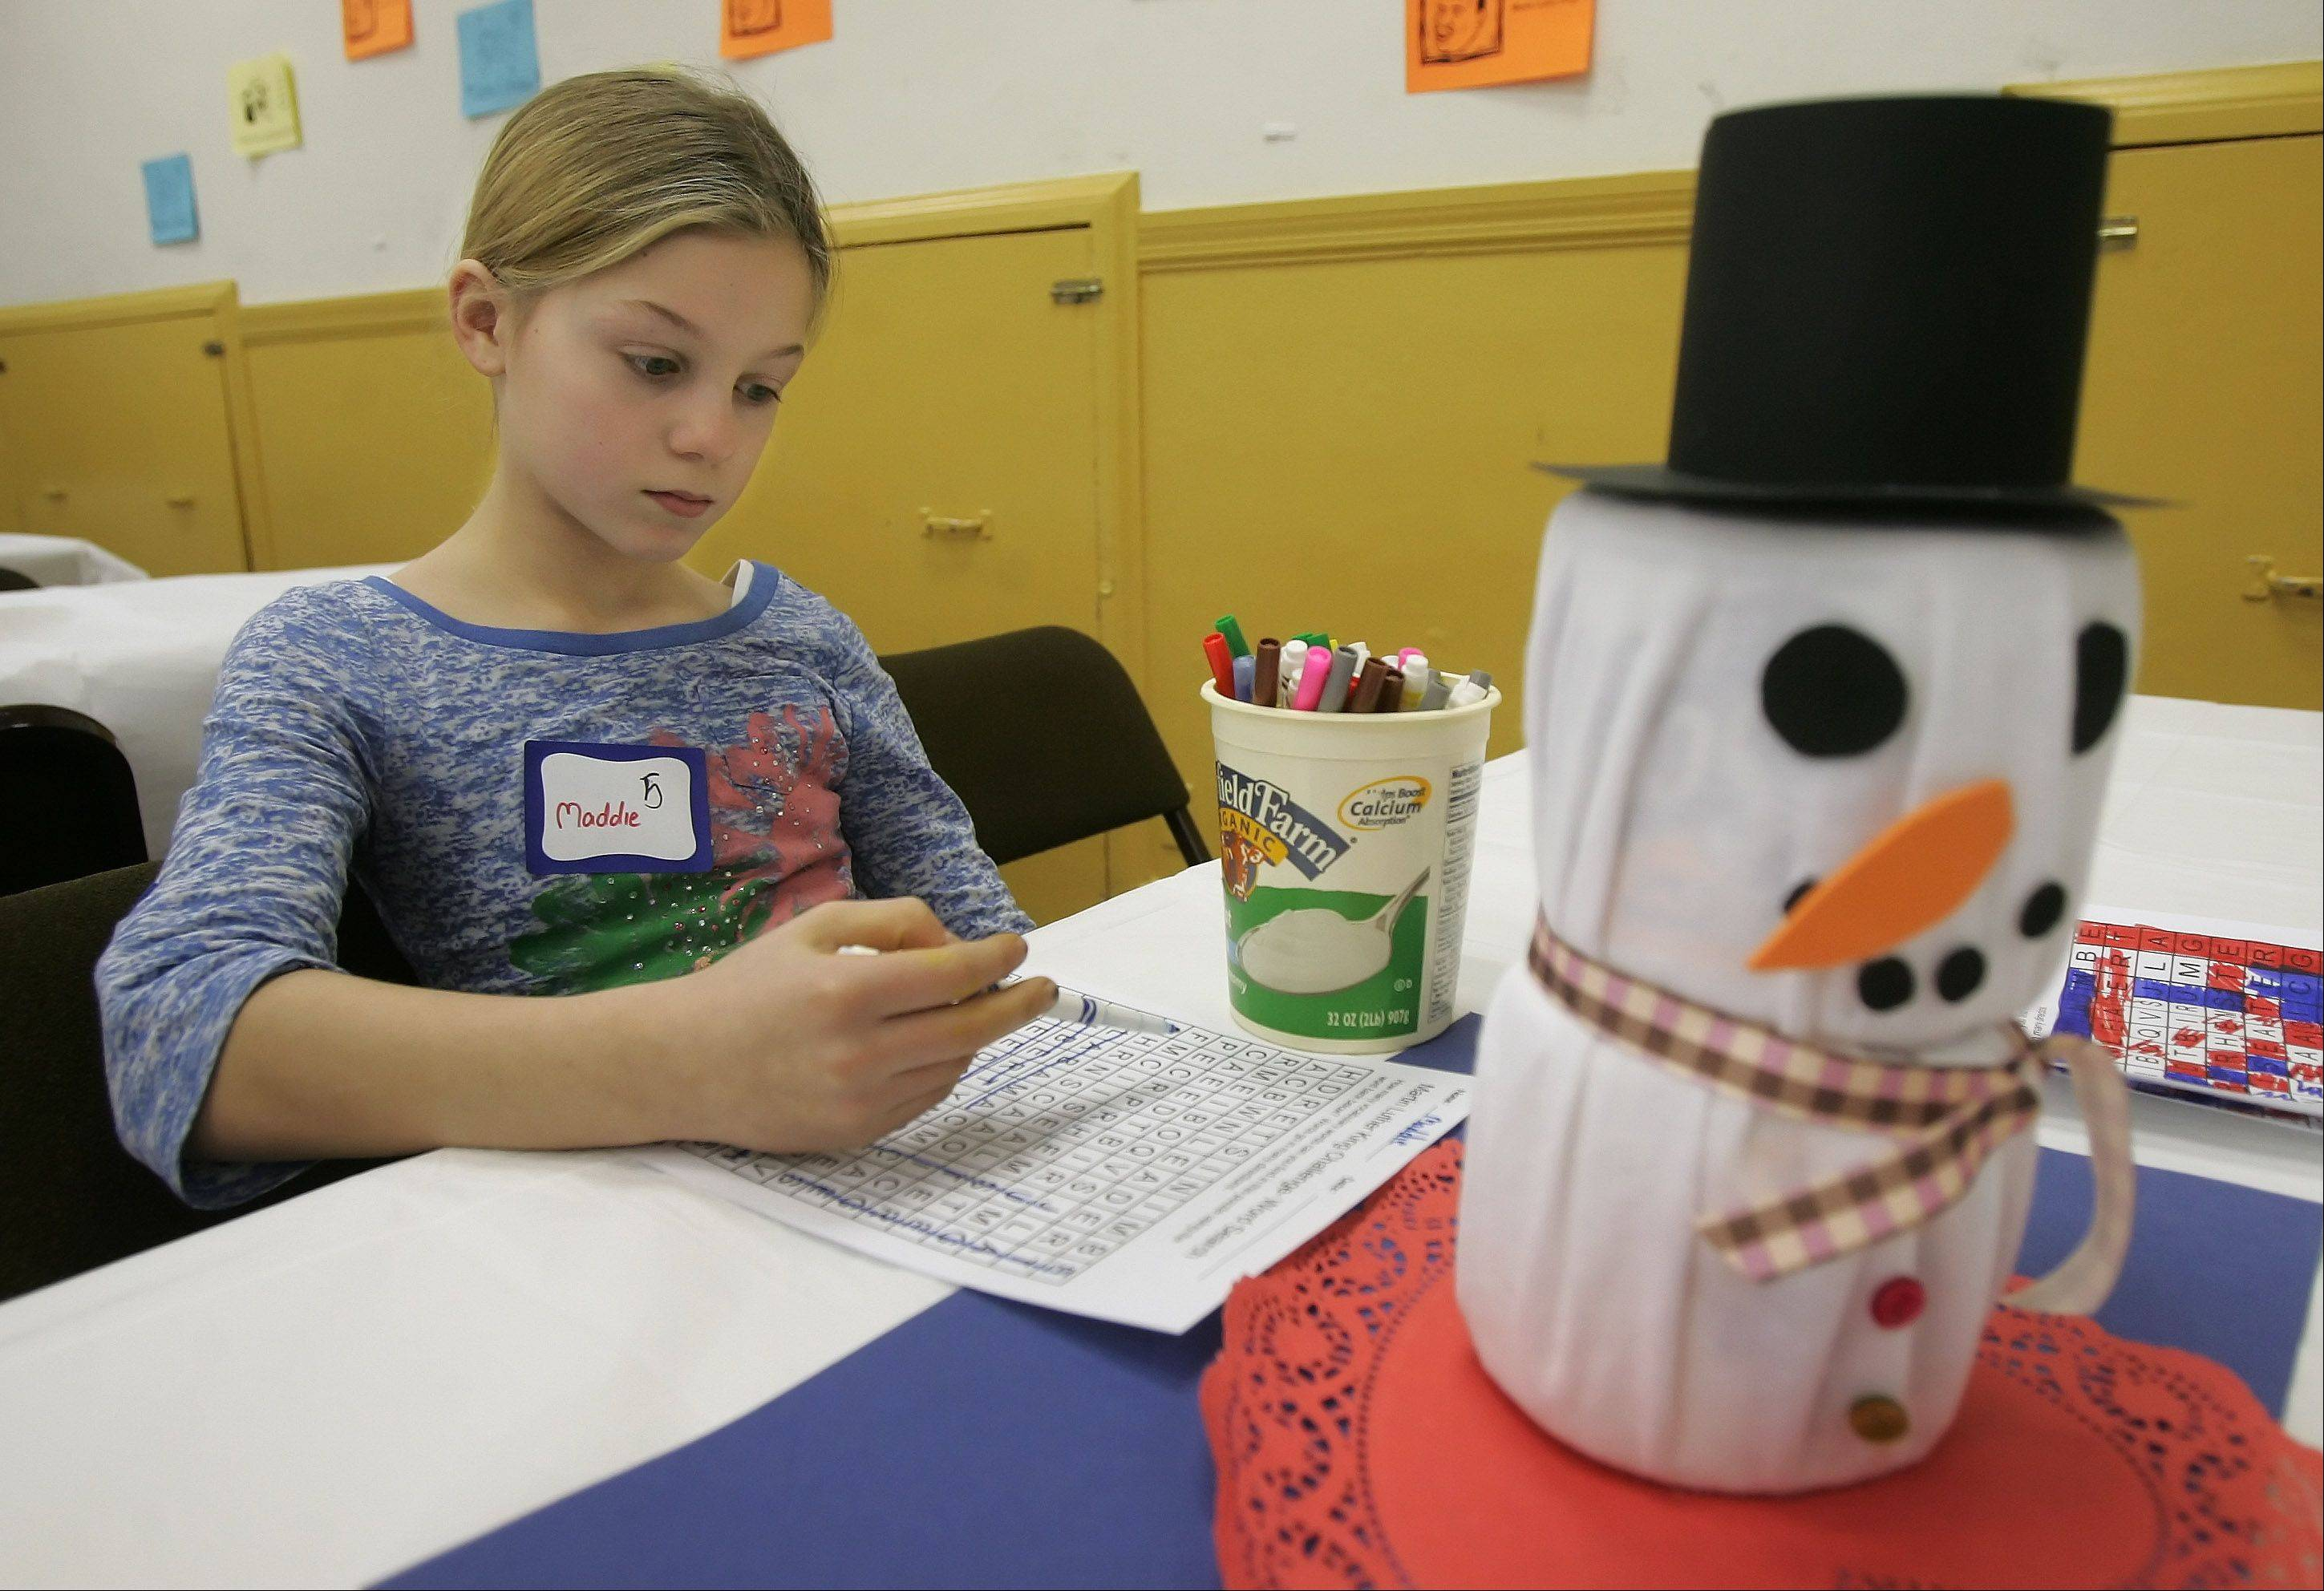 Maddie Kuntz, 10, of Libertyville, works on a word game based on Martin Luther King, Jr. during the Hearts the Same program Monday at the First Presbyterian Church of Libertyville. The event focused on Martin Luther Ling, Jr. with art projects for kids.